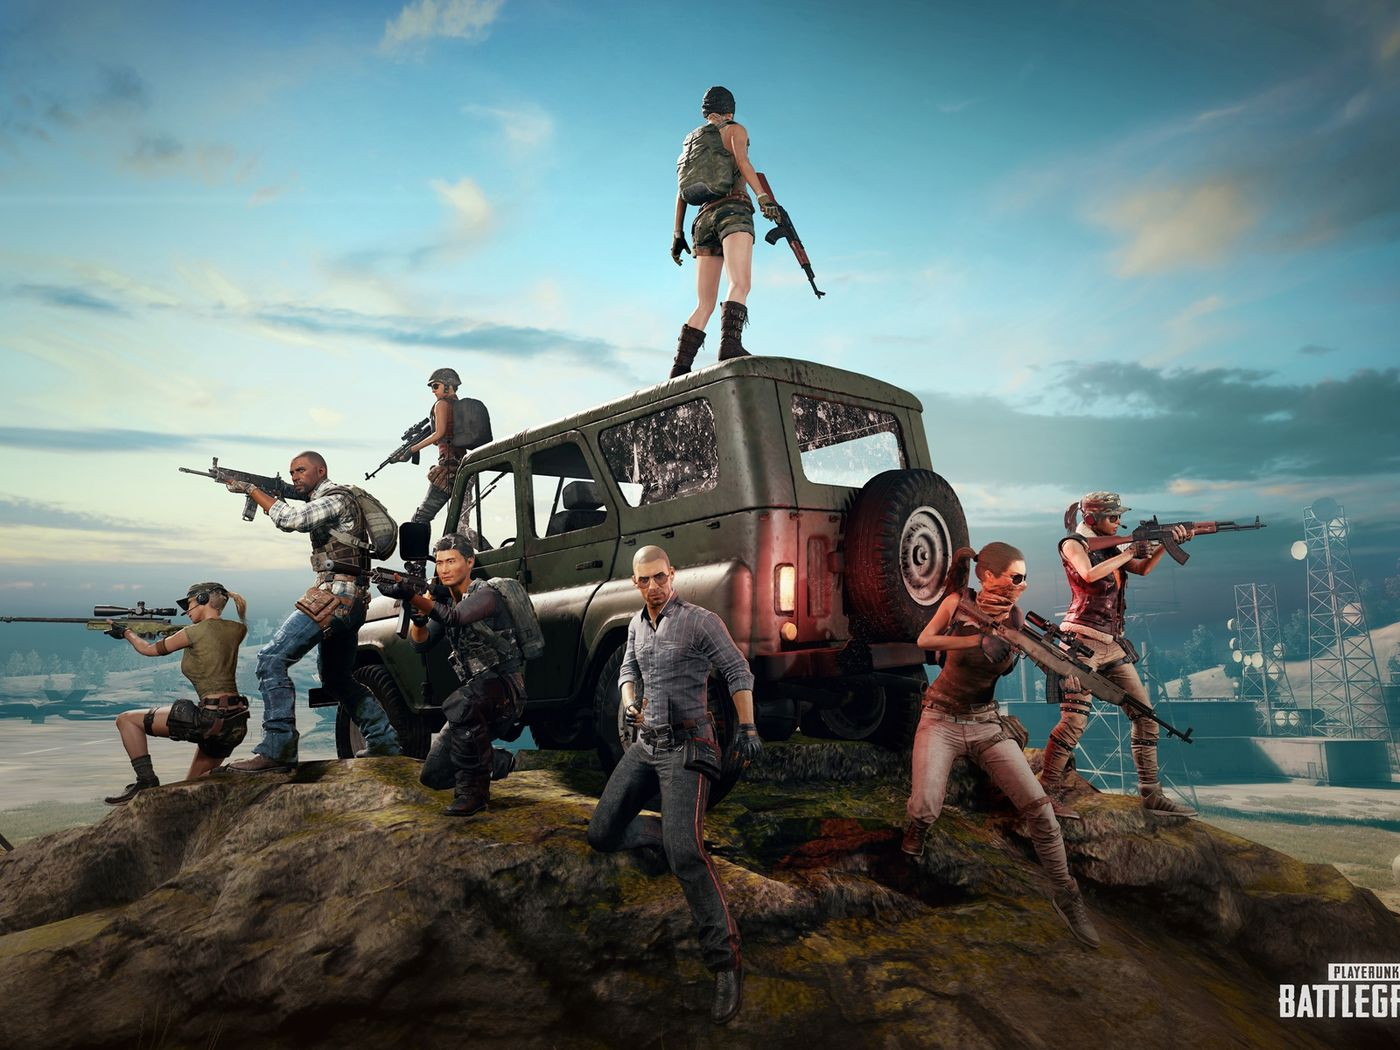 Pubg Hd File: 2019 New Apps APK Free And